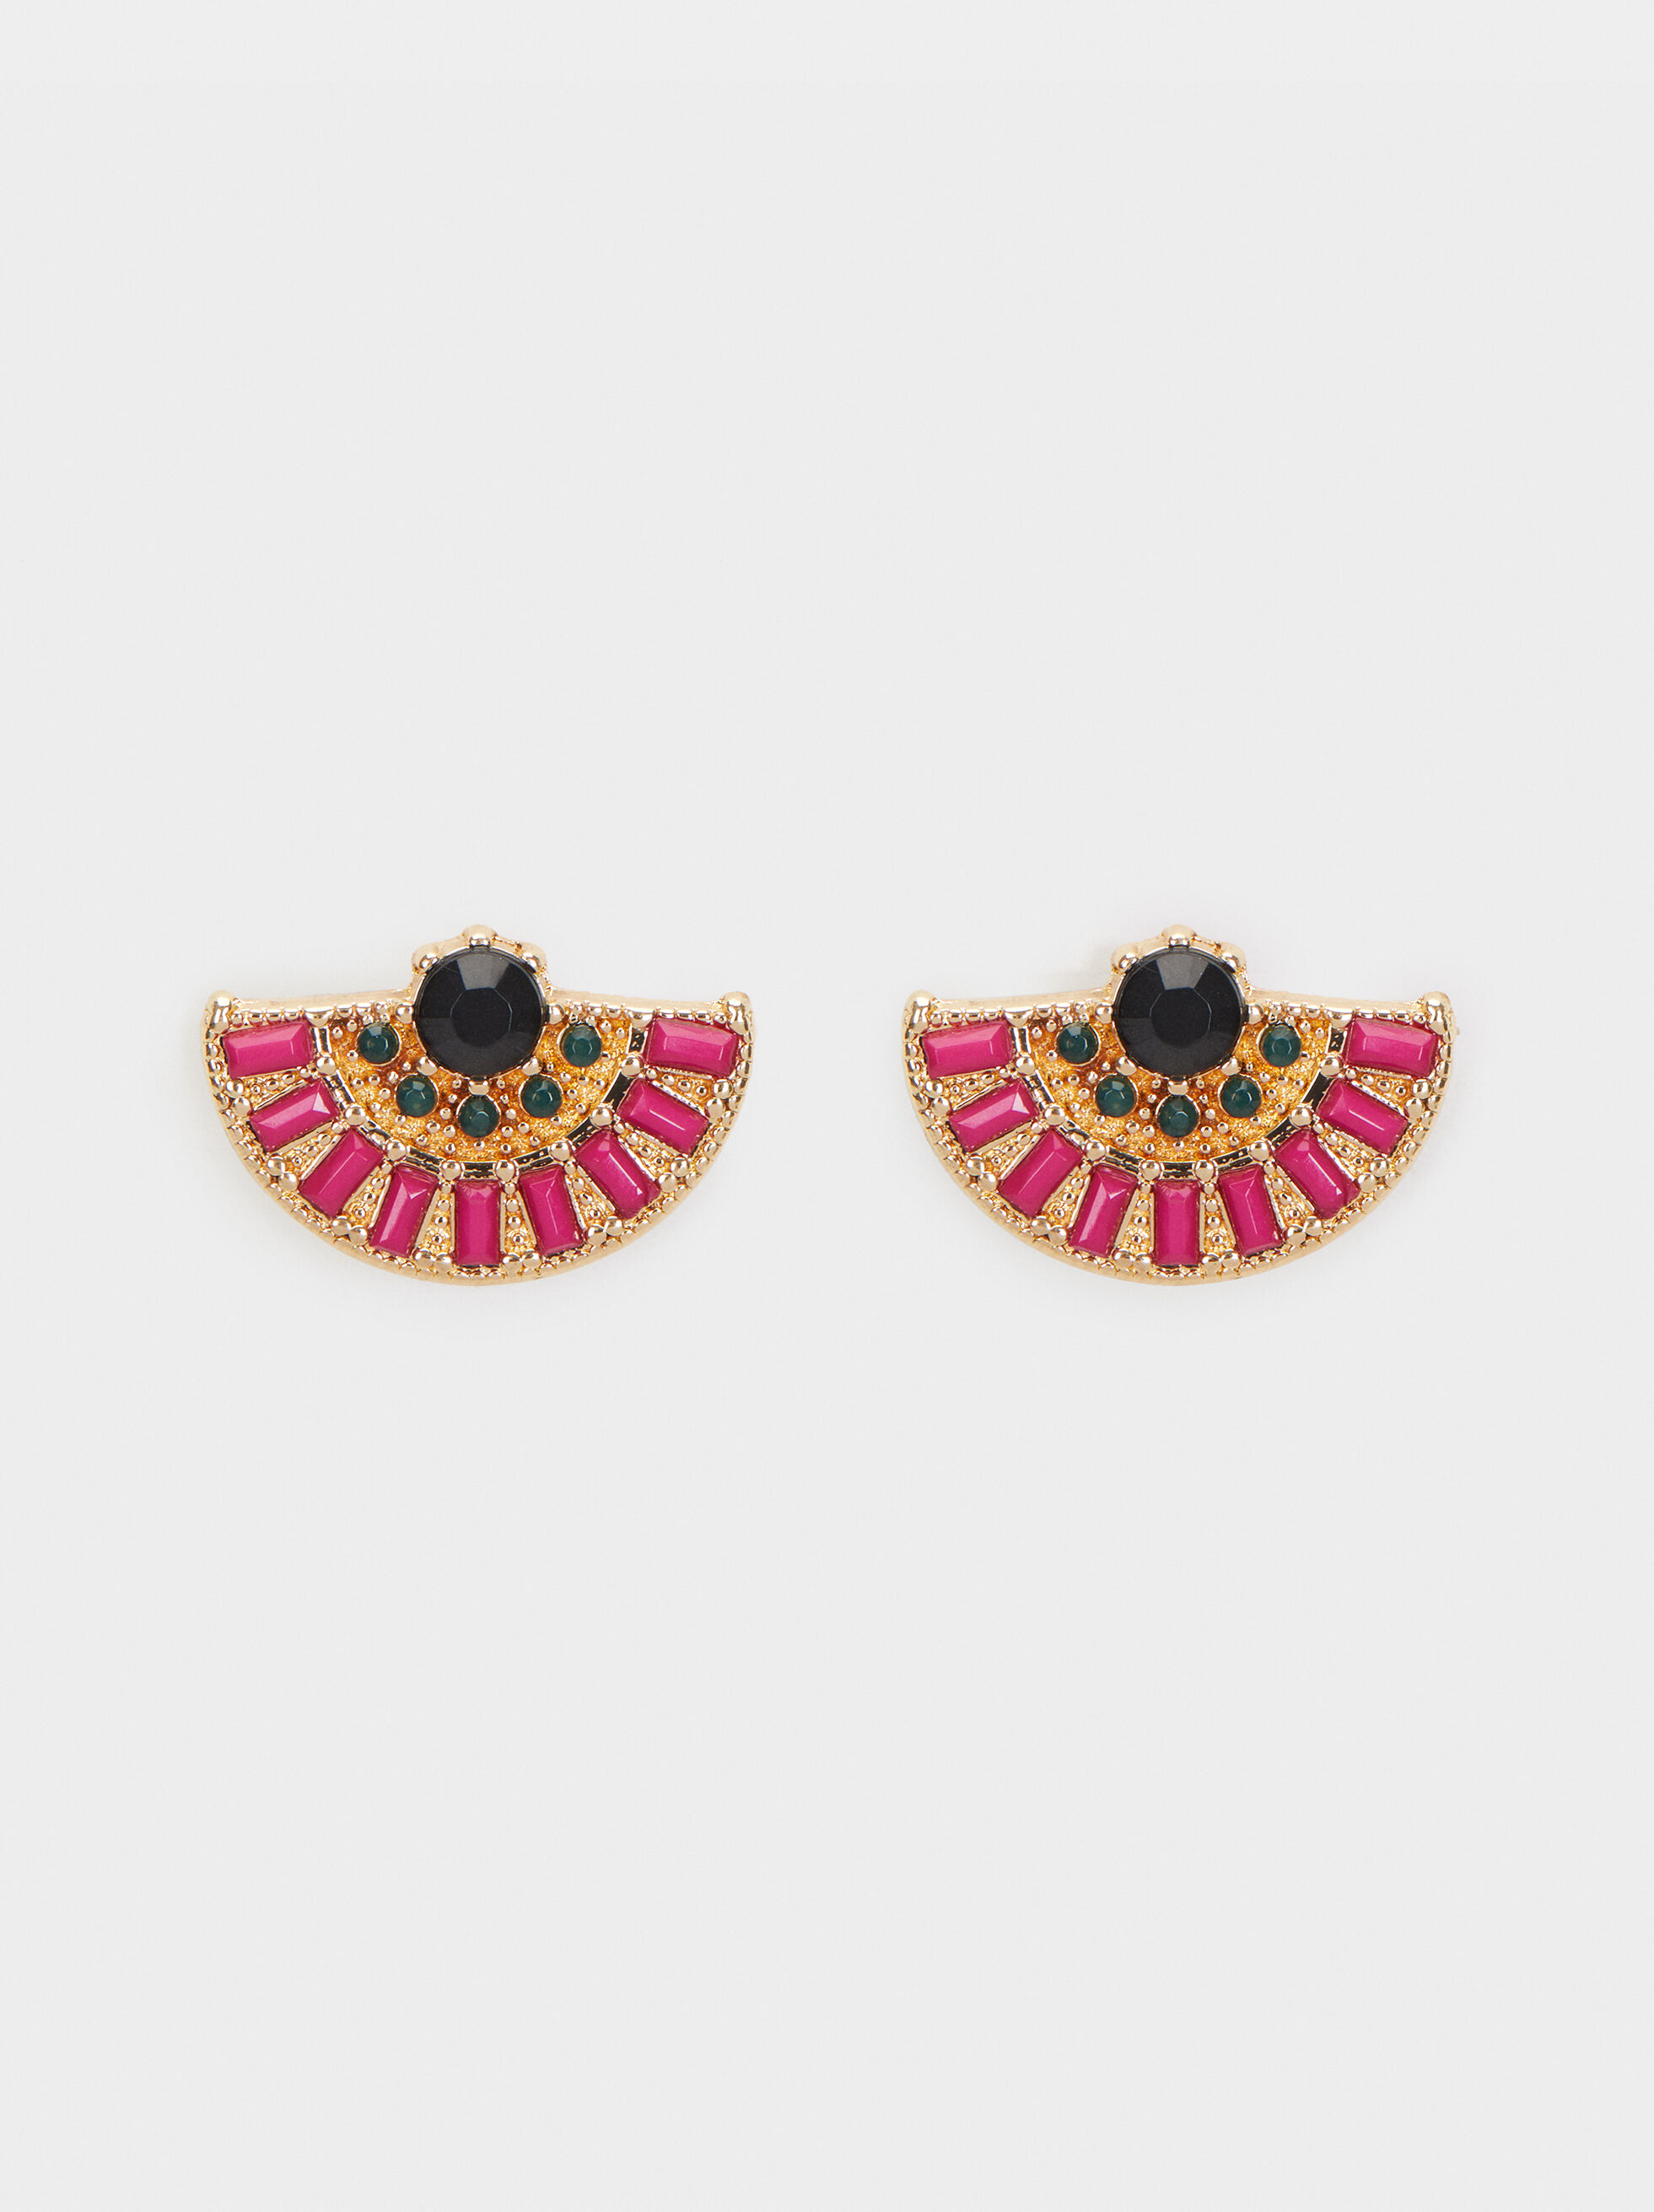 Wild Color Stud Earrings, Multicolor, hi-res